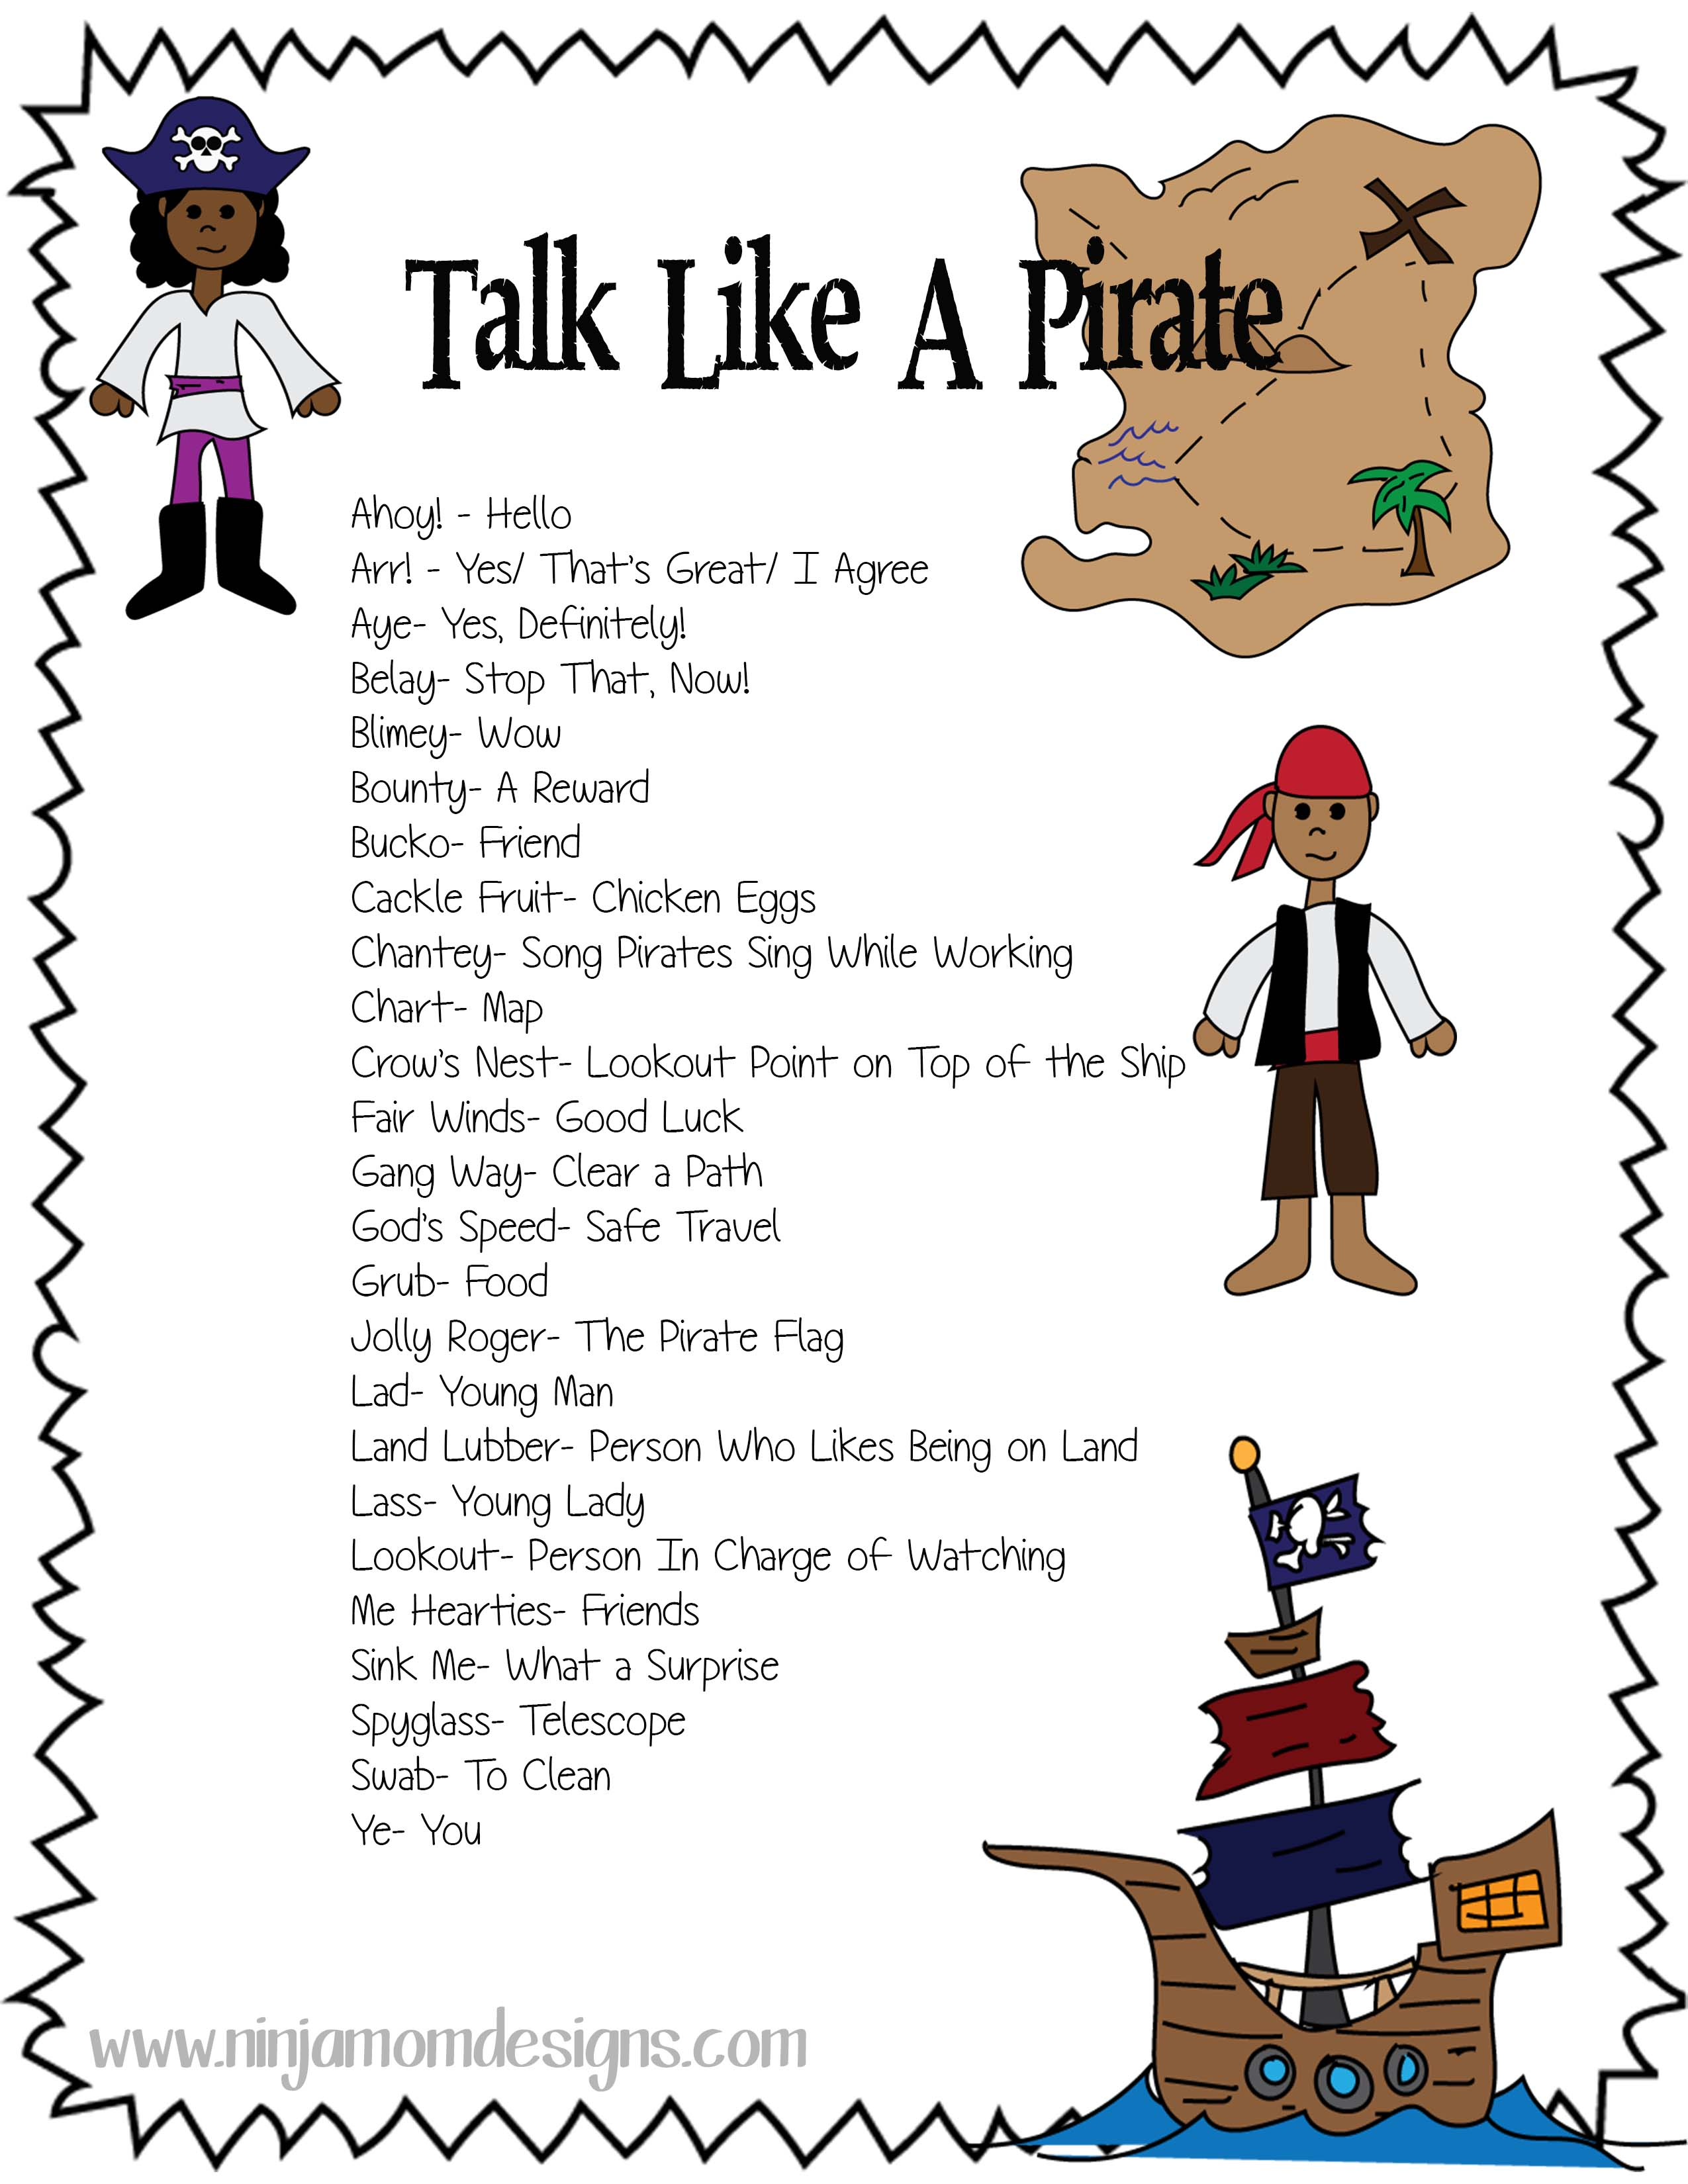 Free Talk Like A Pirate Printable